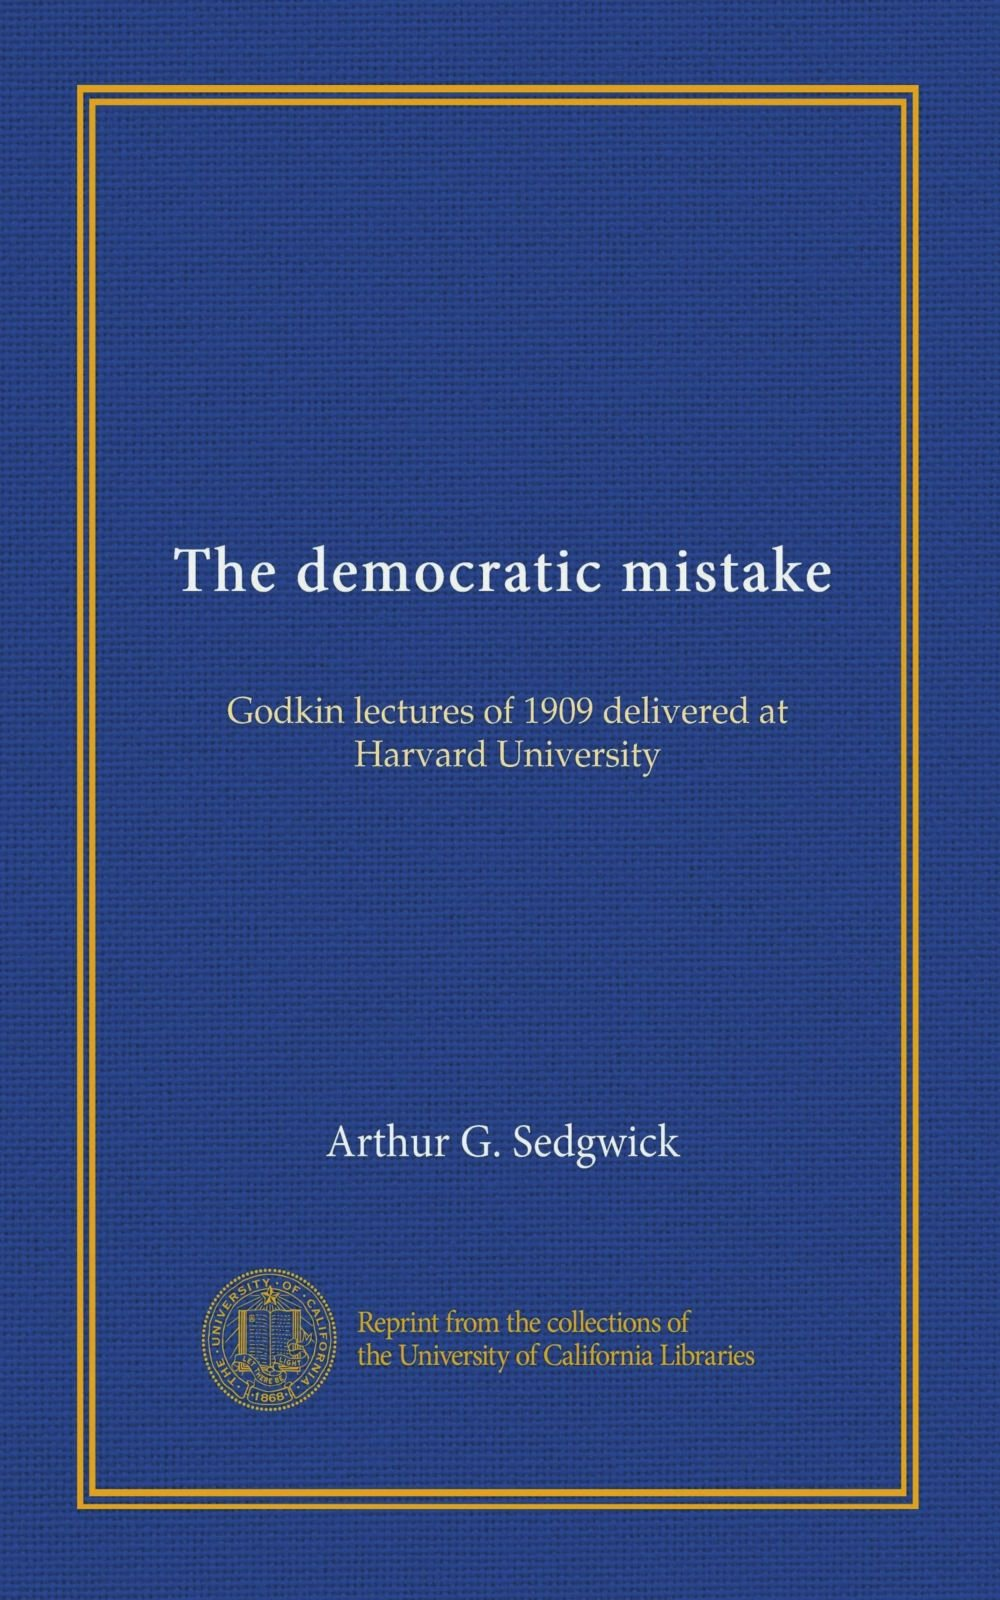 The democratic mistake: Godkin lectures of 1909 delivered at Harvard University pdf